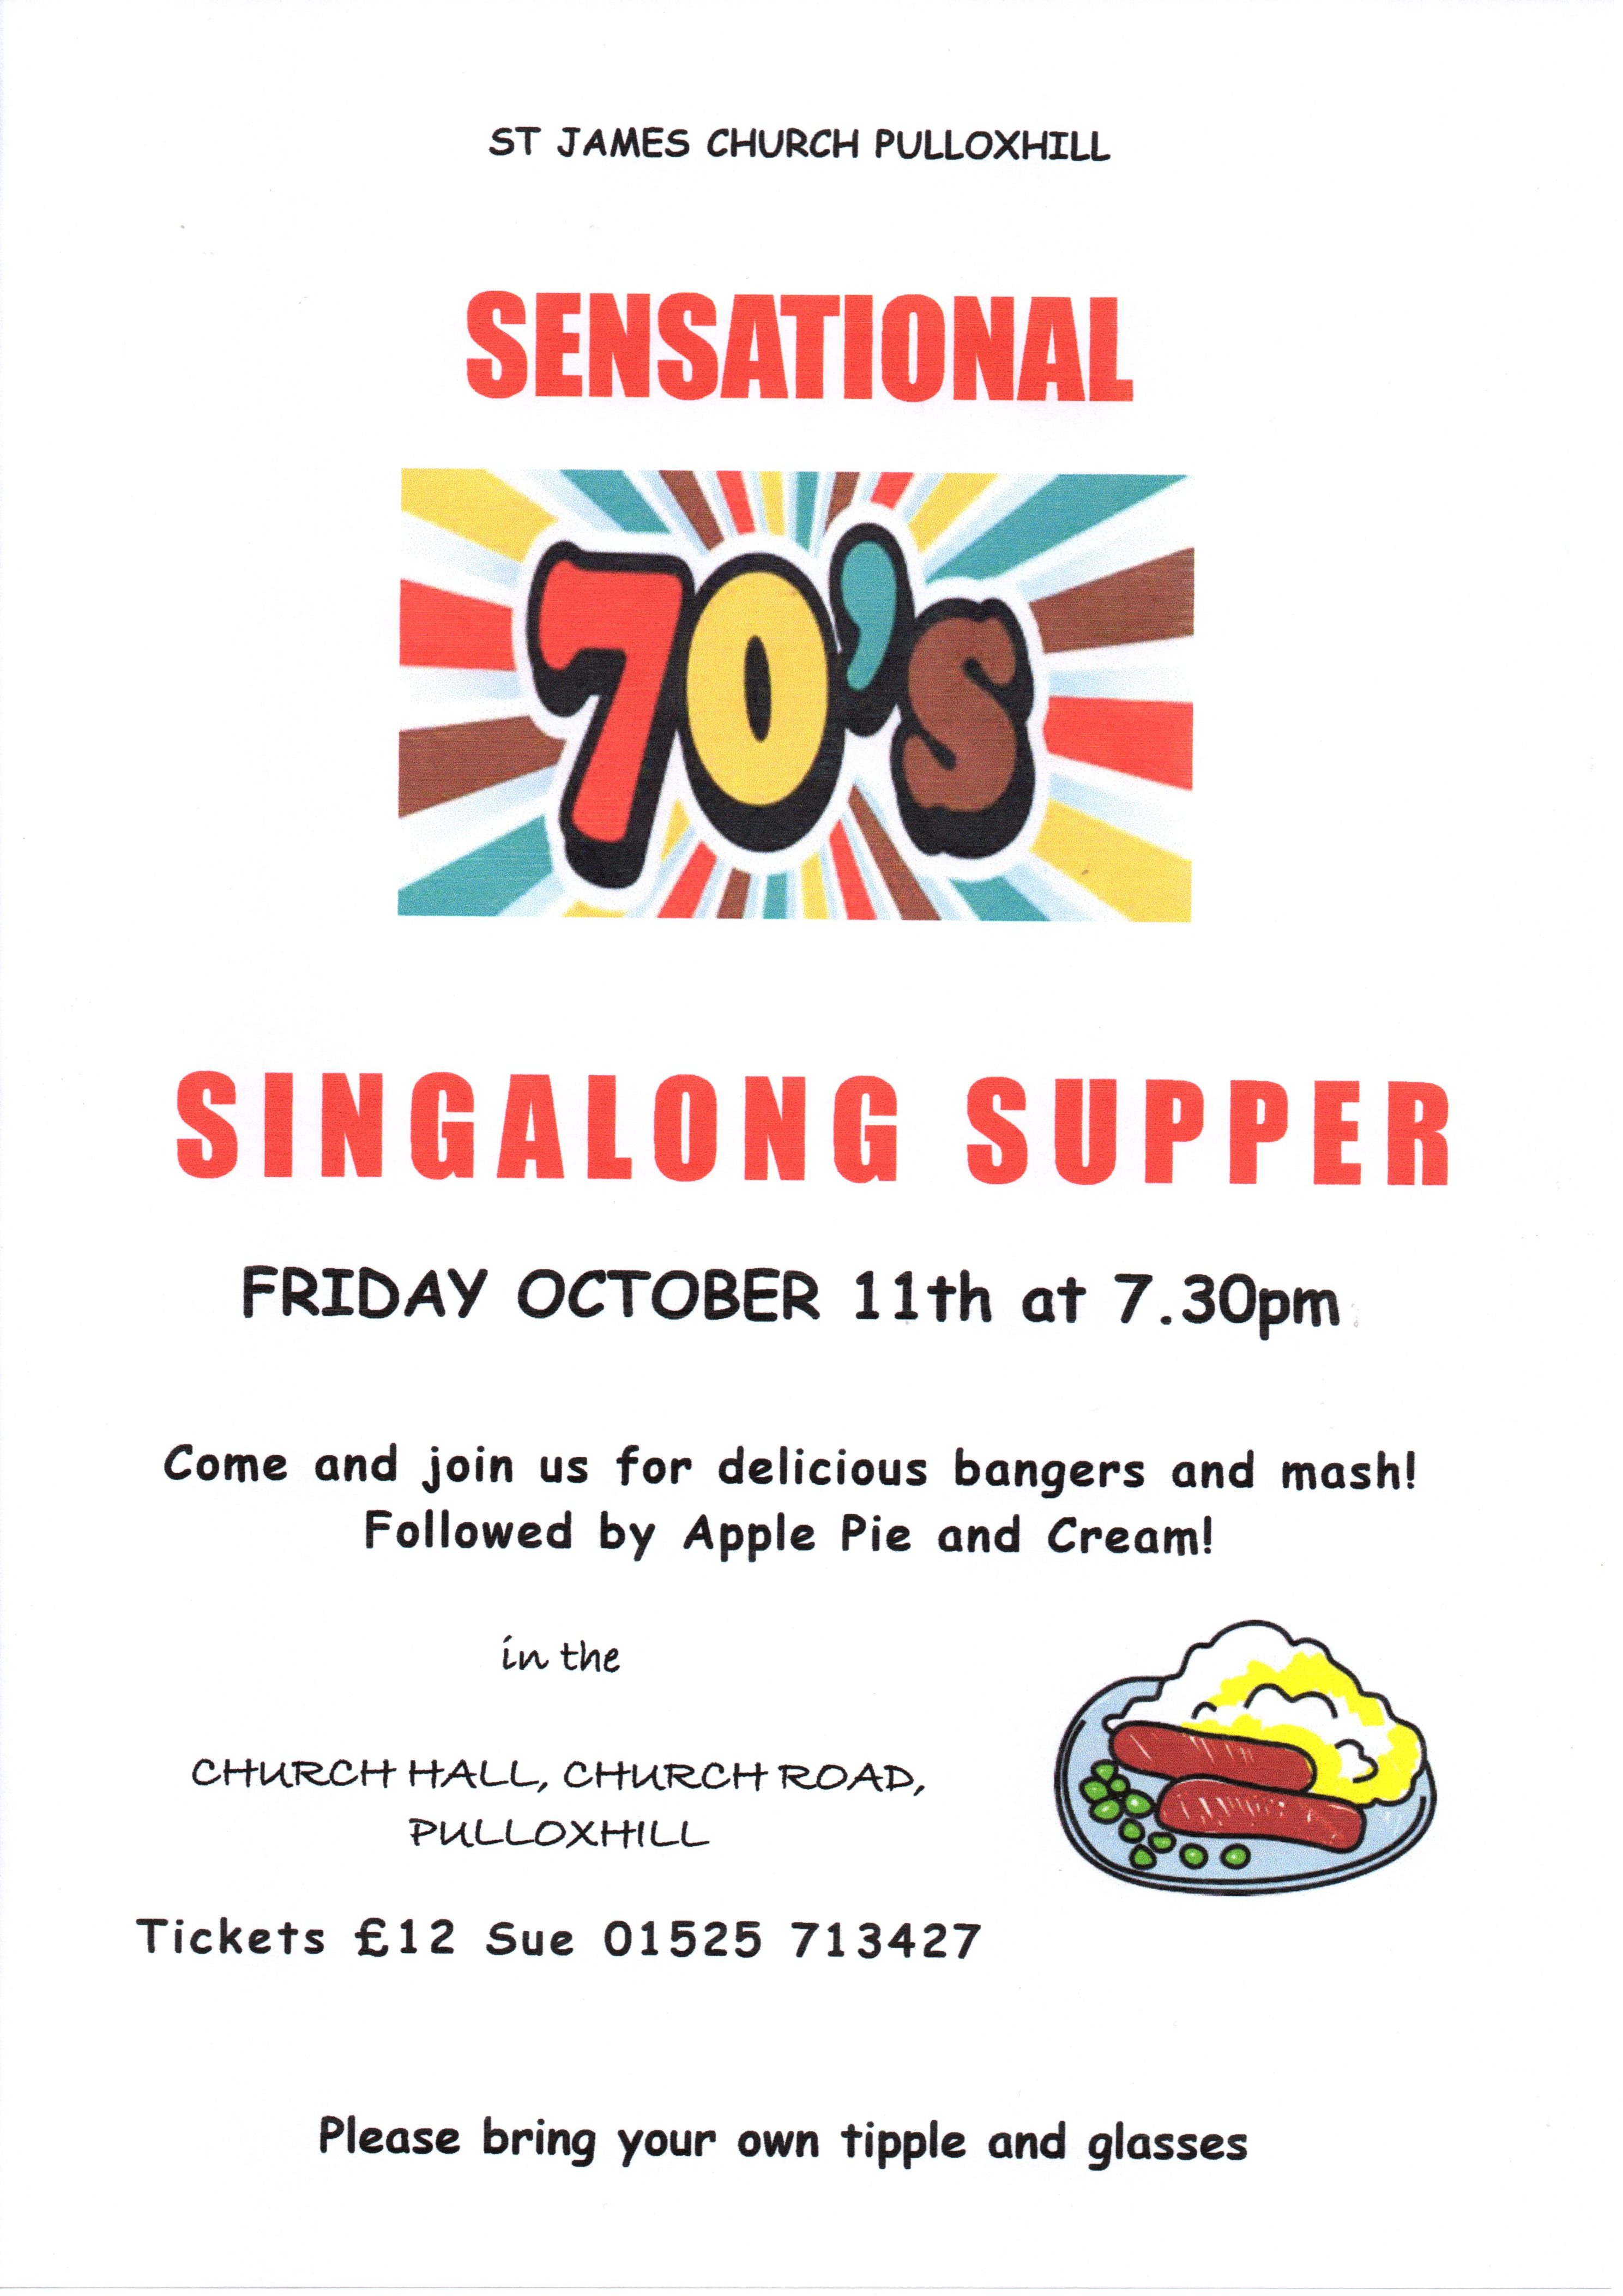 SEVENTIES SINGALONG SUPPER 11/10/2019